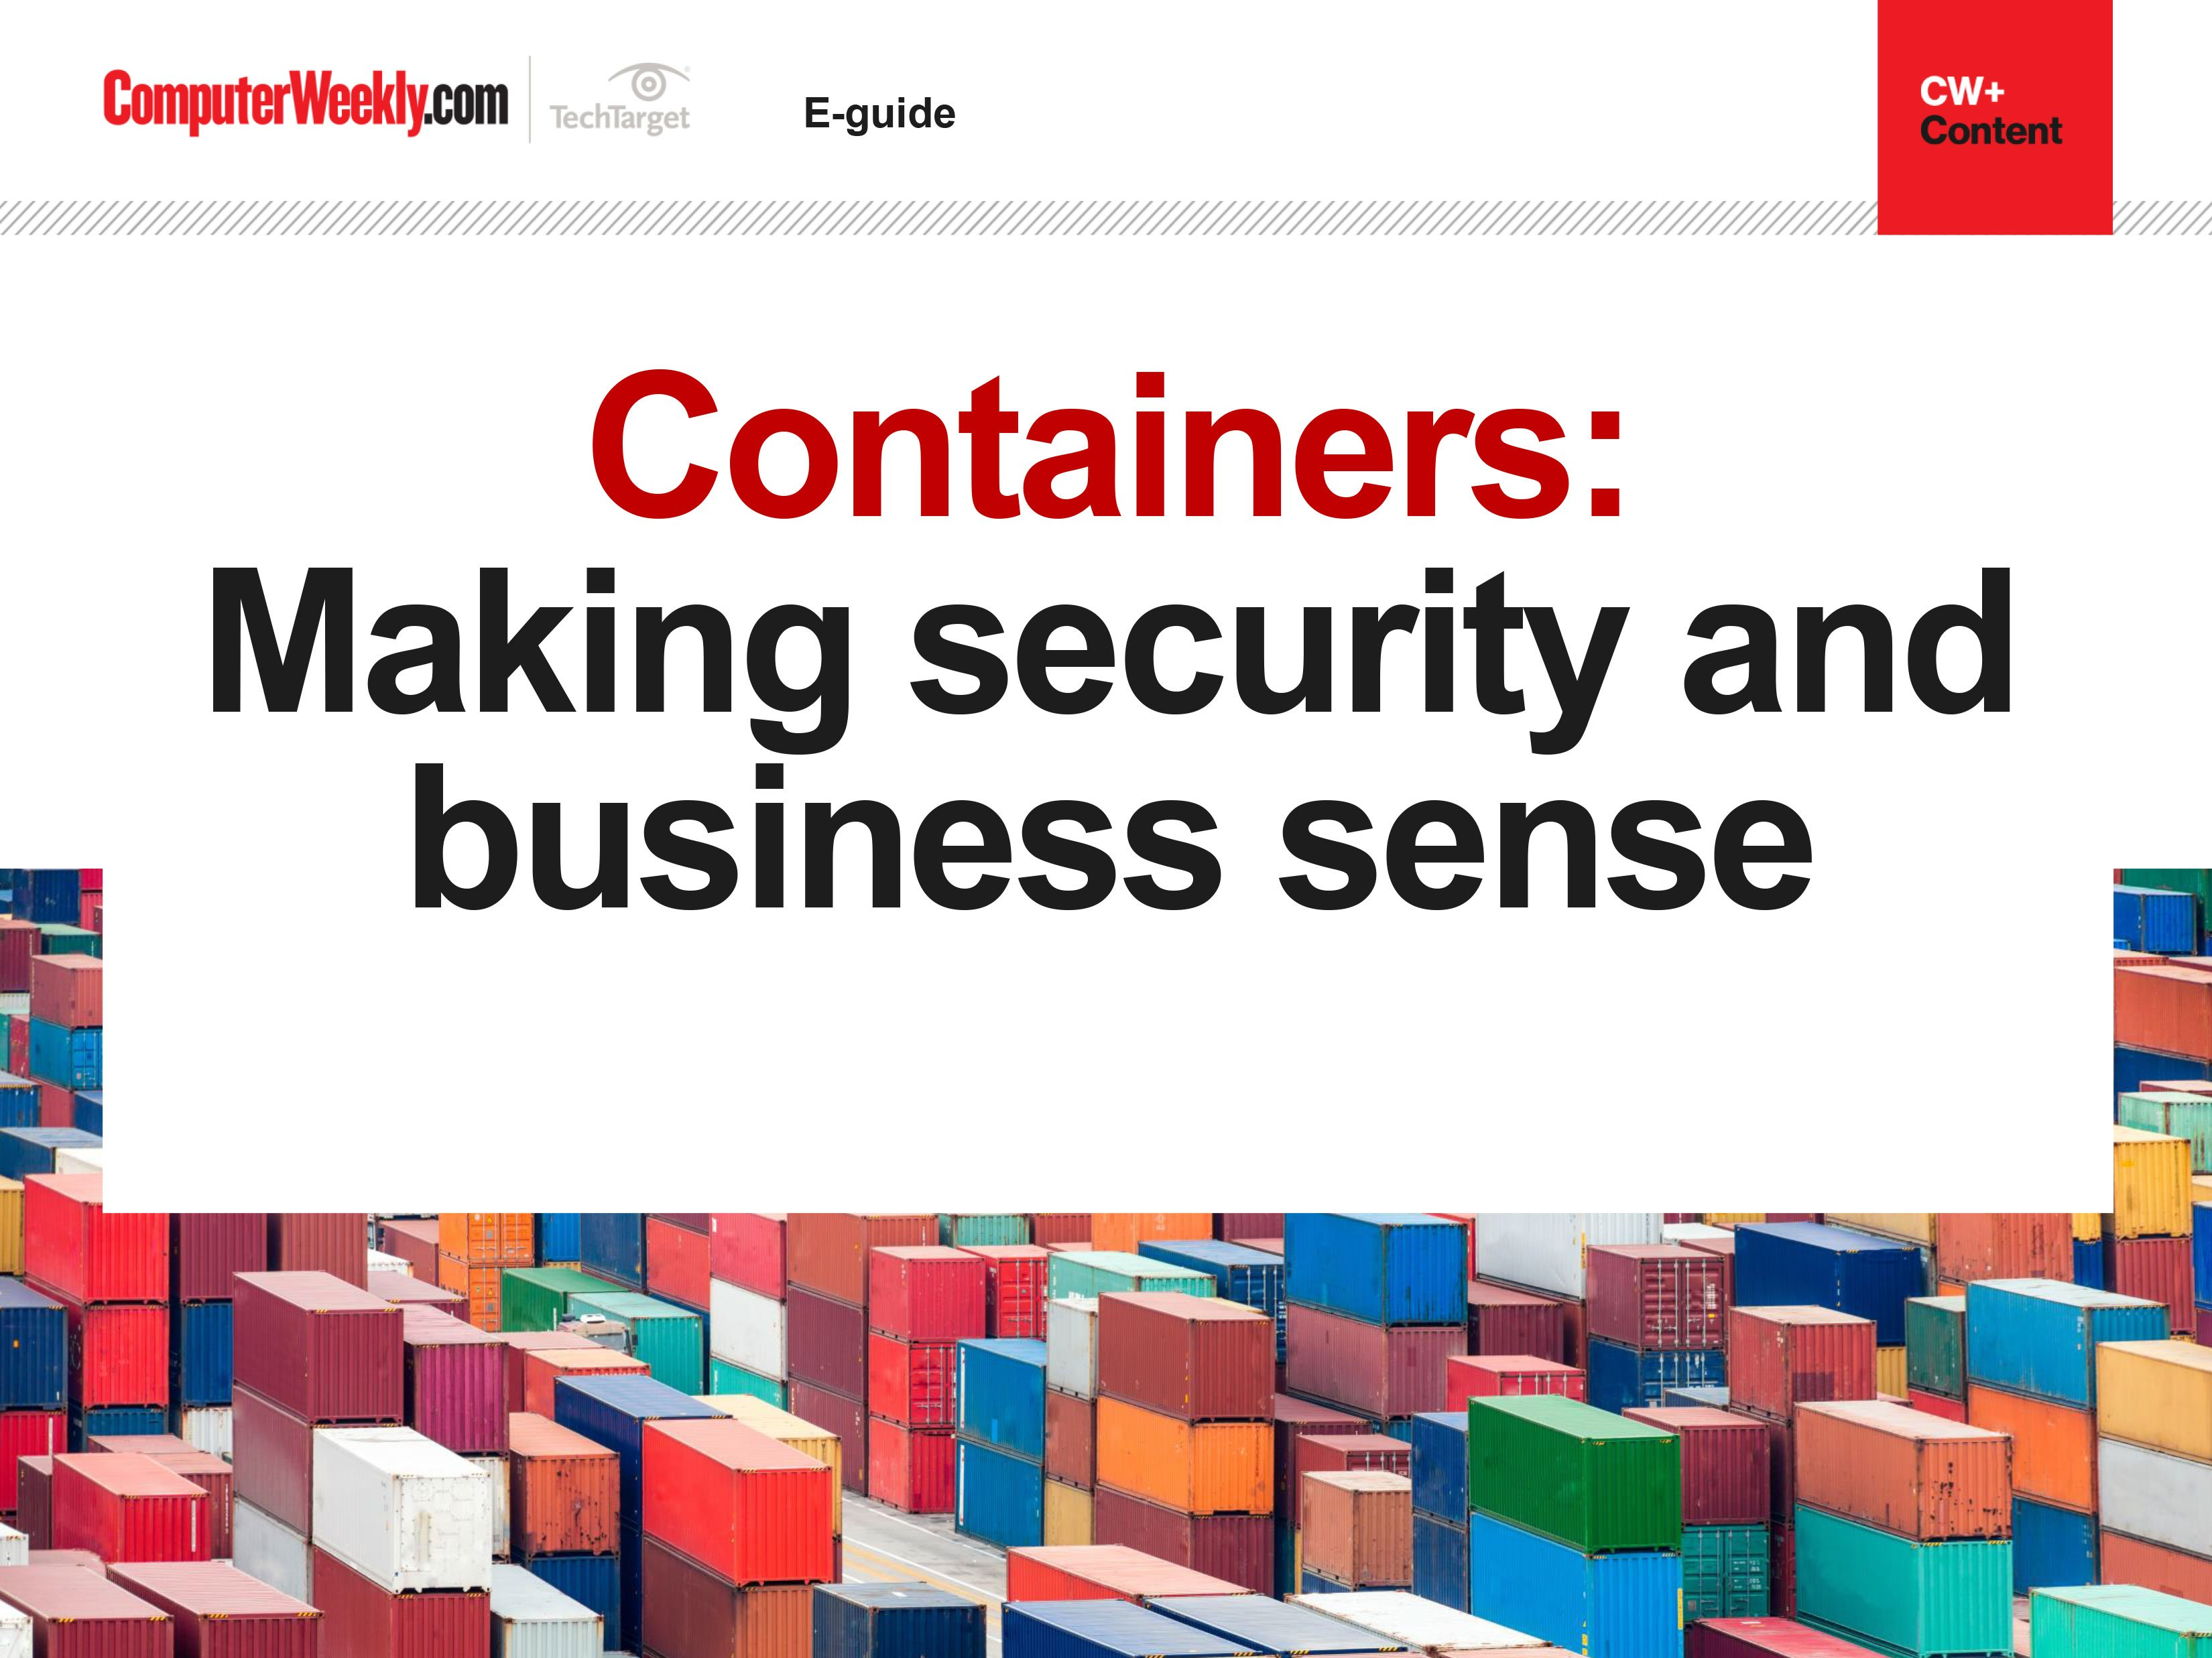 Containers: Making security and business sense